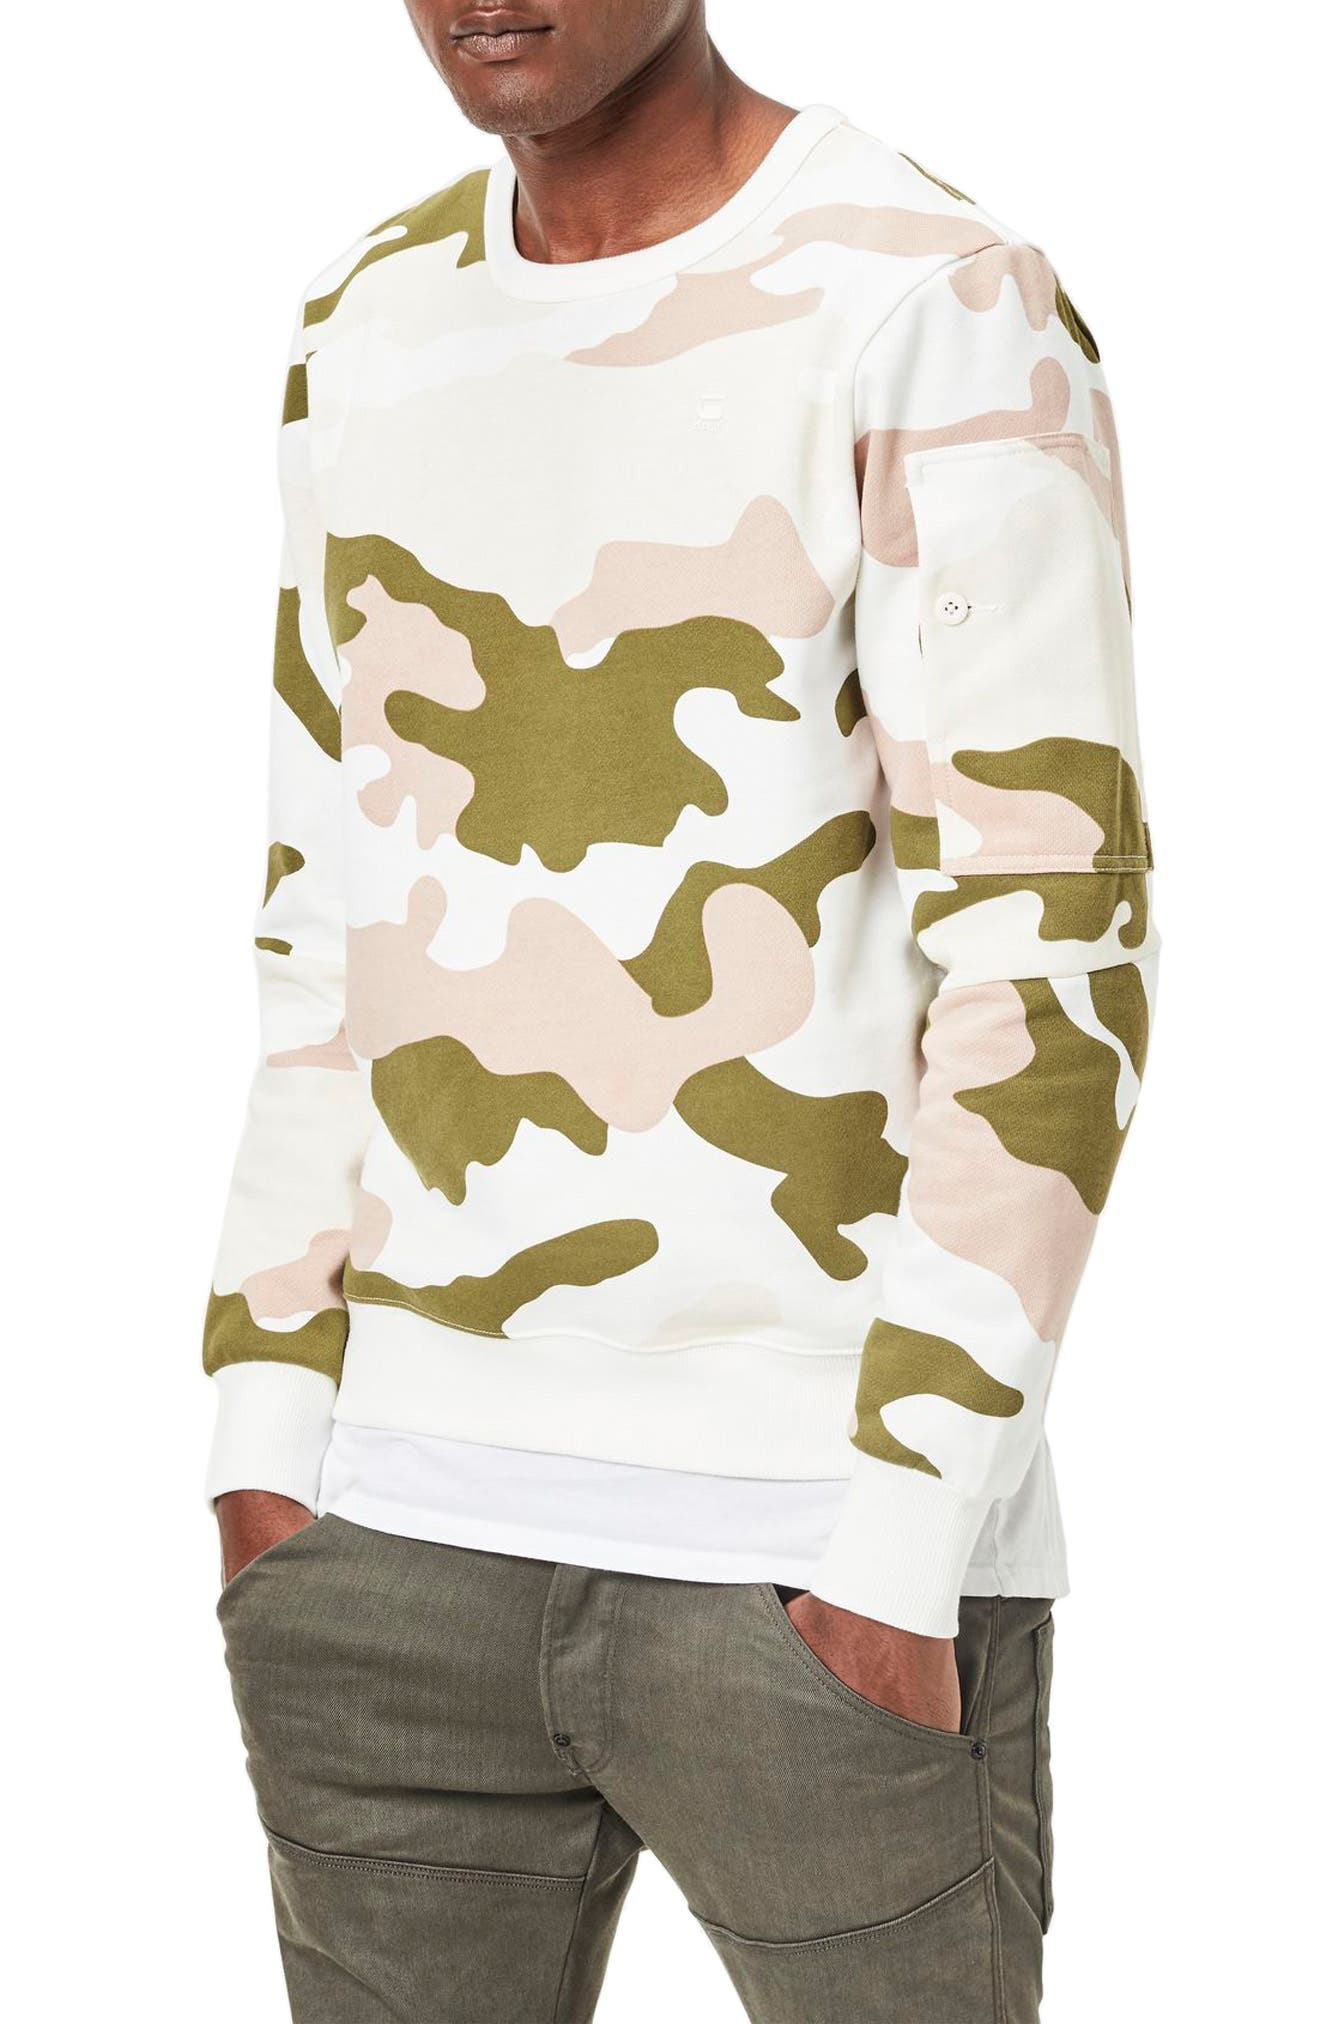 Stalt Camo Sweatshirt,                         Main,                         color,